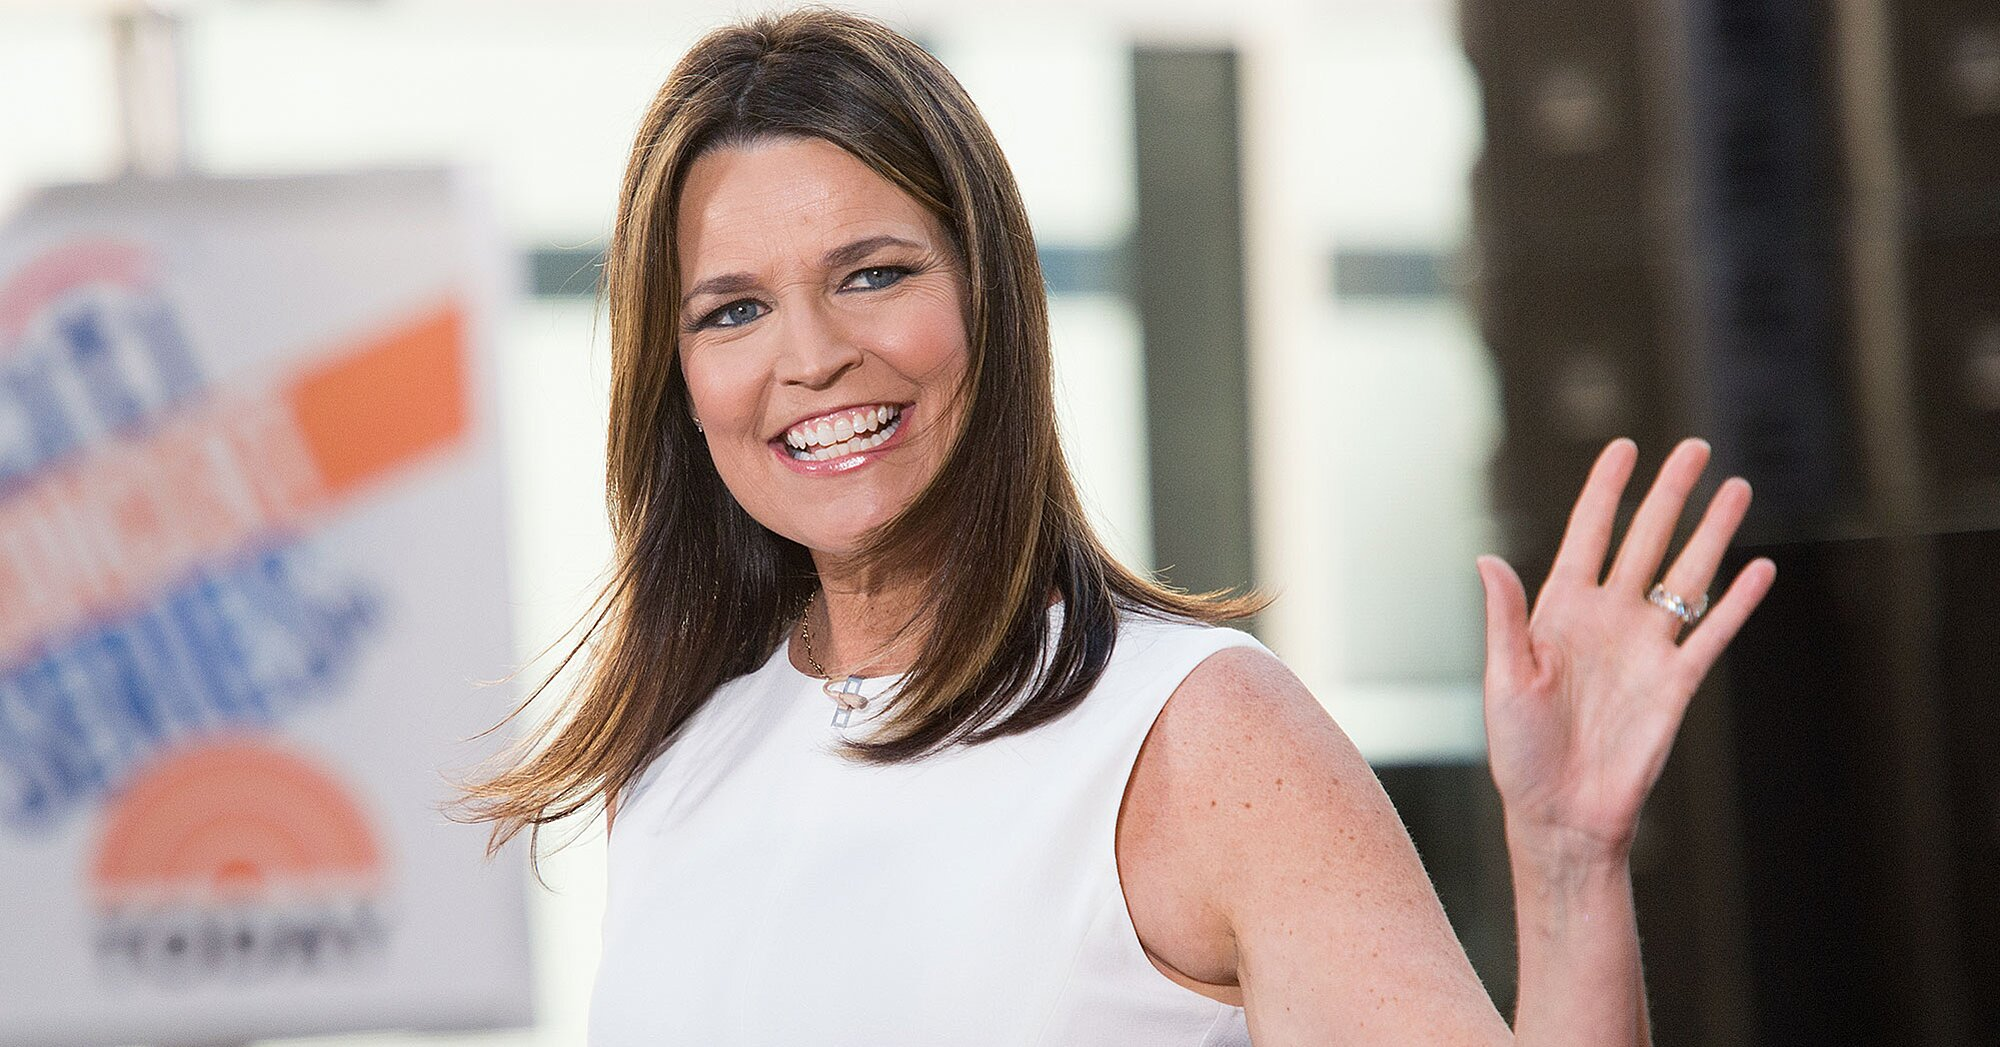 Savannah Guthrie S Last Day On Today Before Maternity Leave Is Friday People Com